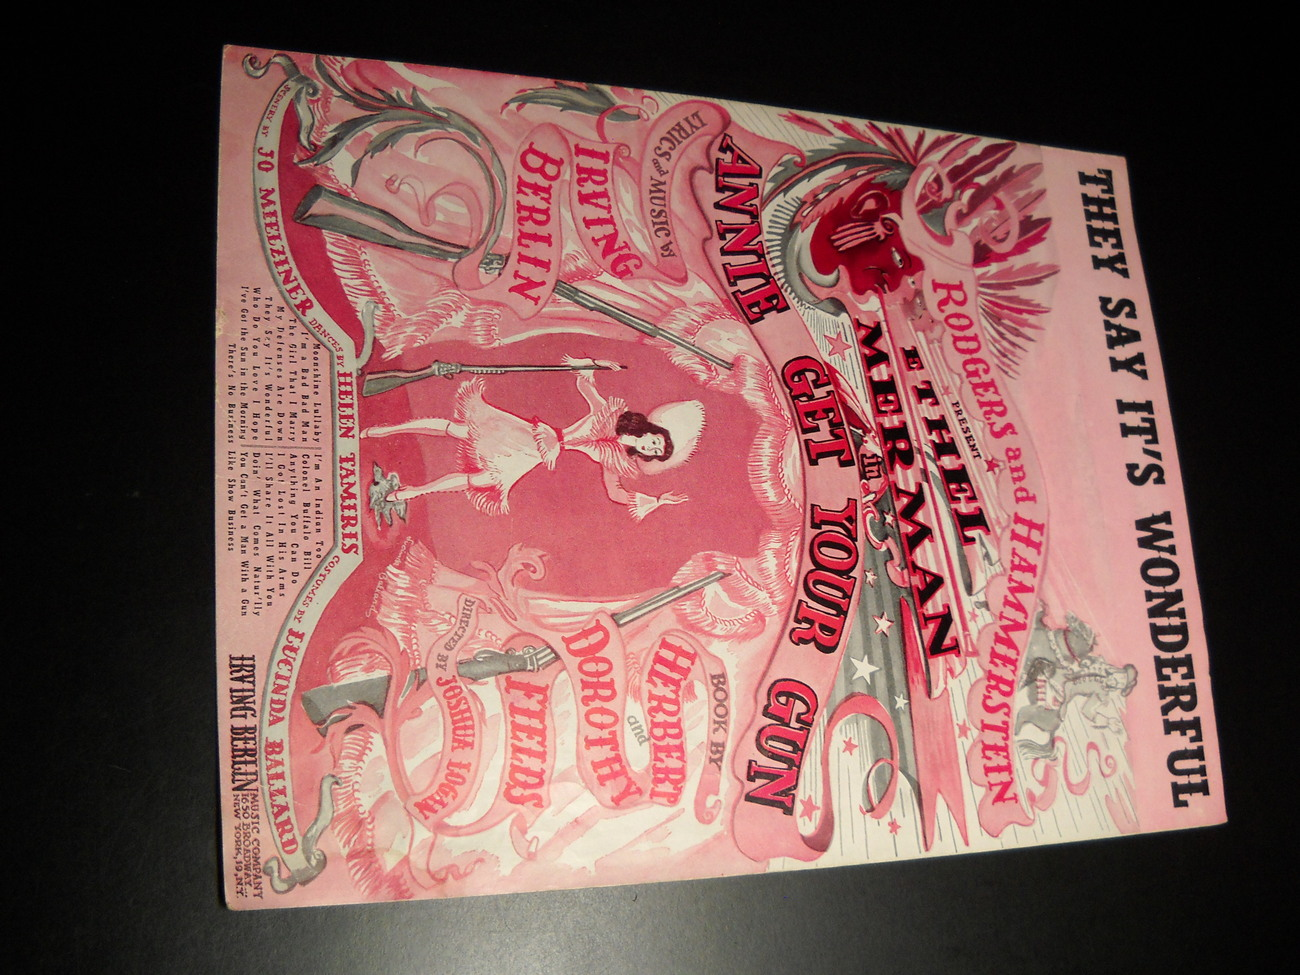 Sheet music they say it s wonderful annie get your gun 1946 irving berlin music  01